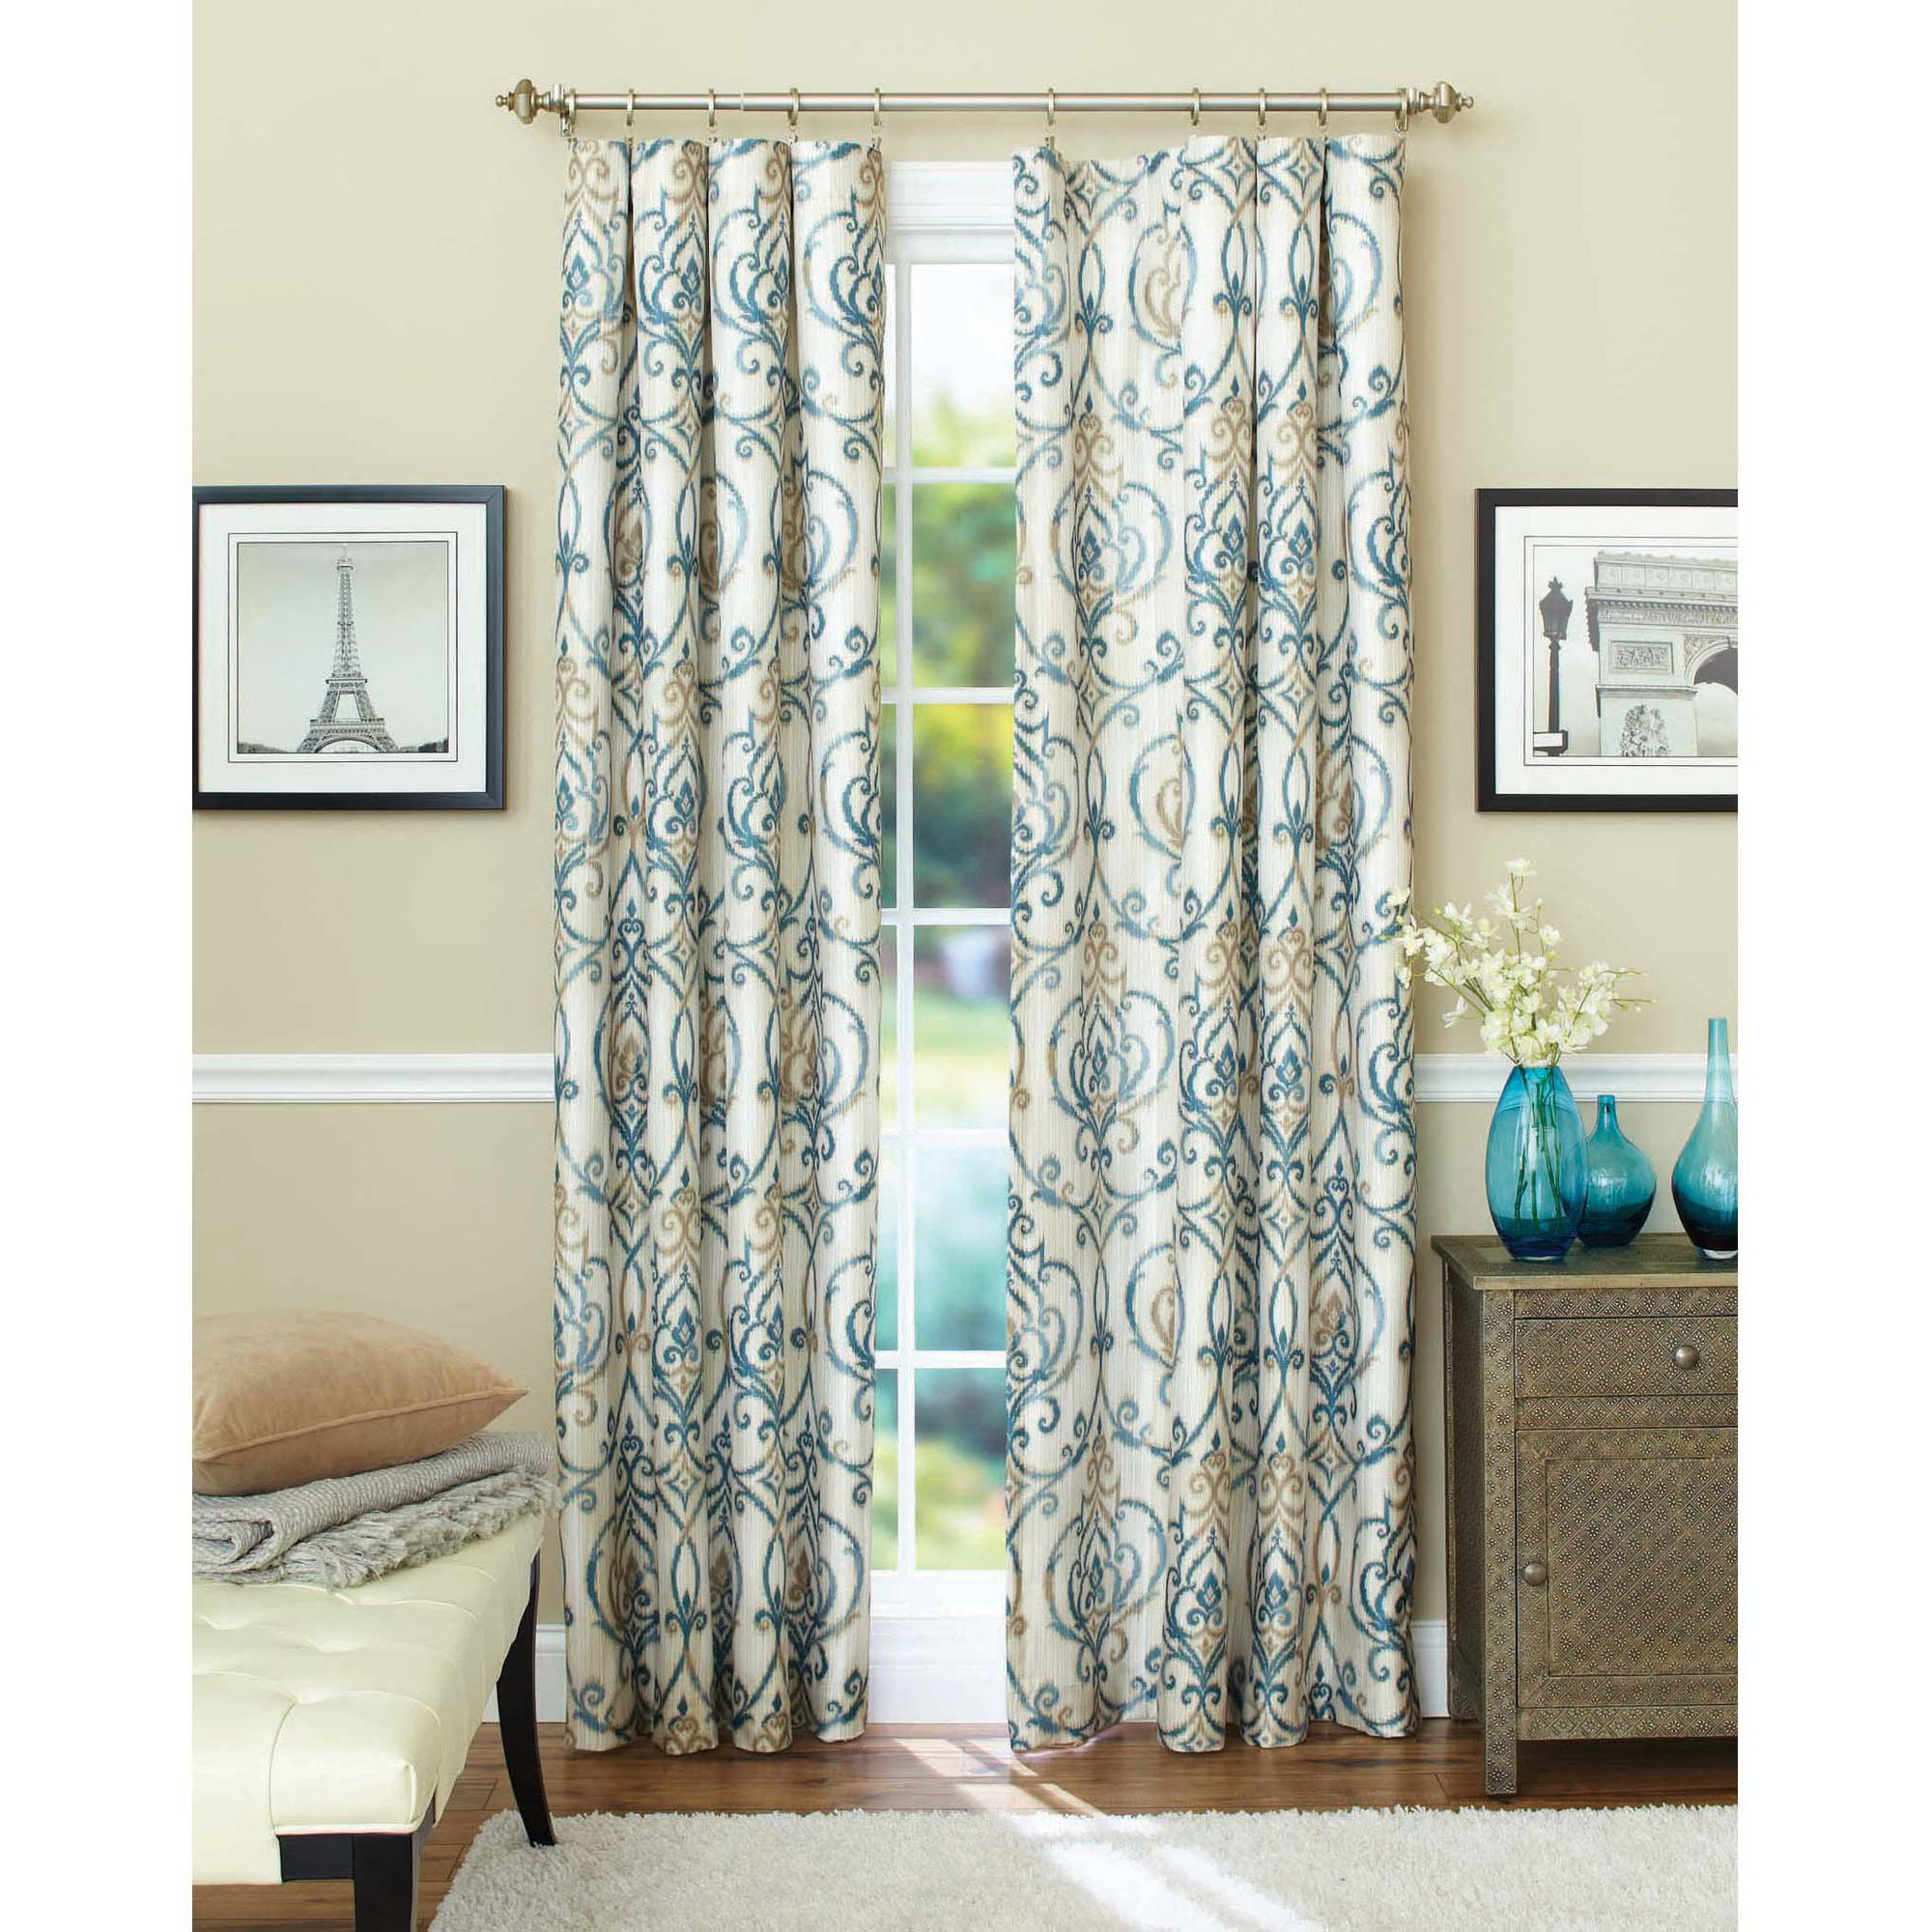 Bathroom curtains from walmart - Bathroom Curtains From Walmart 12